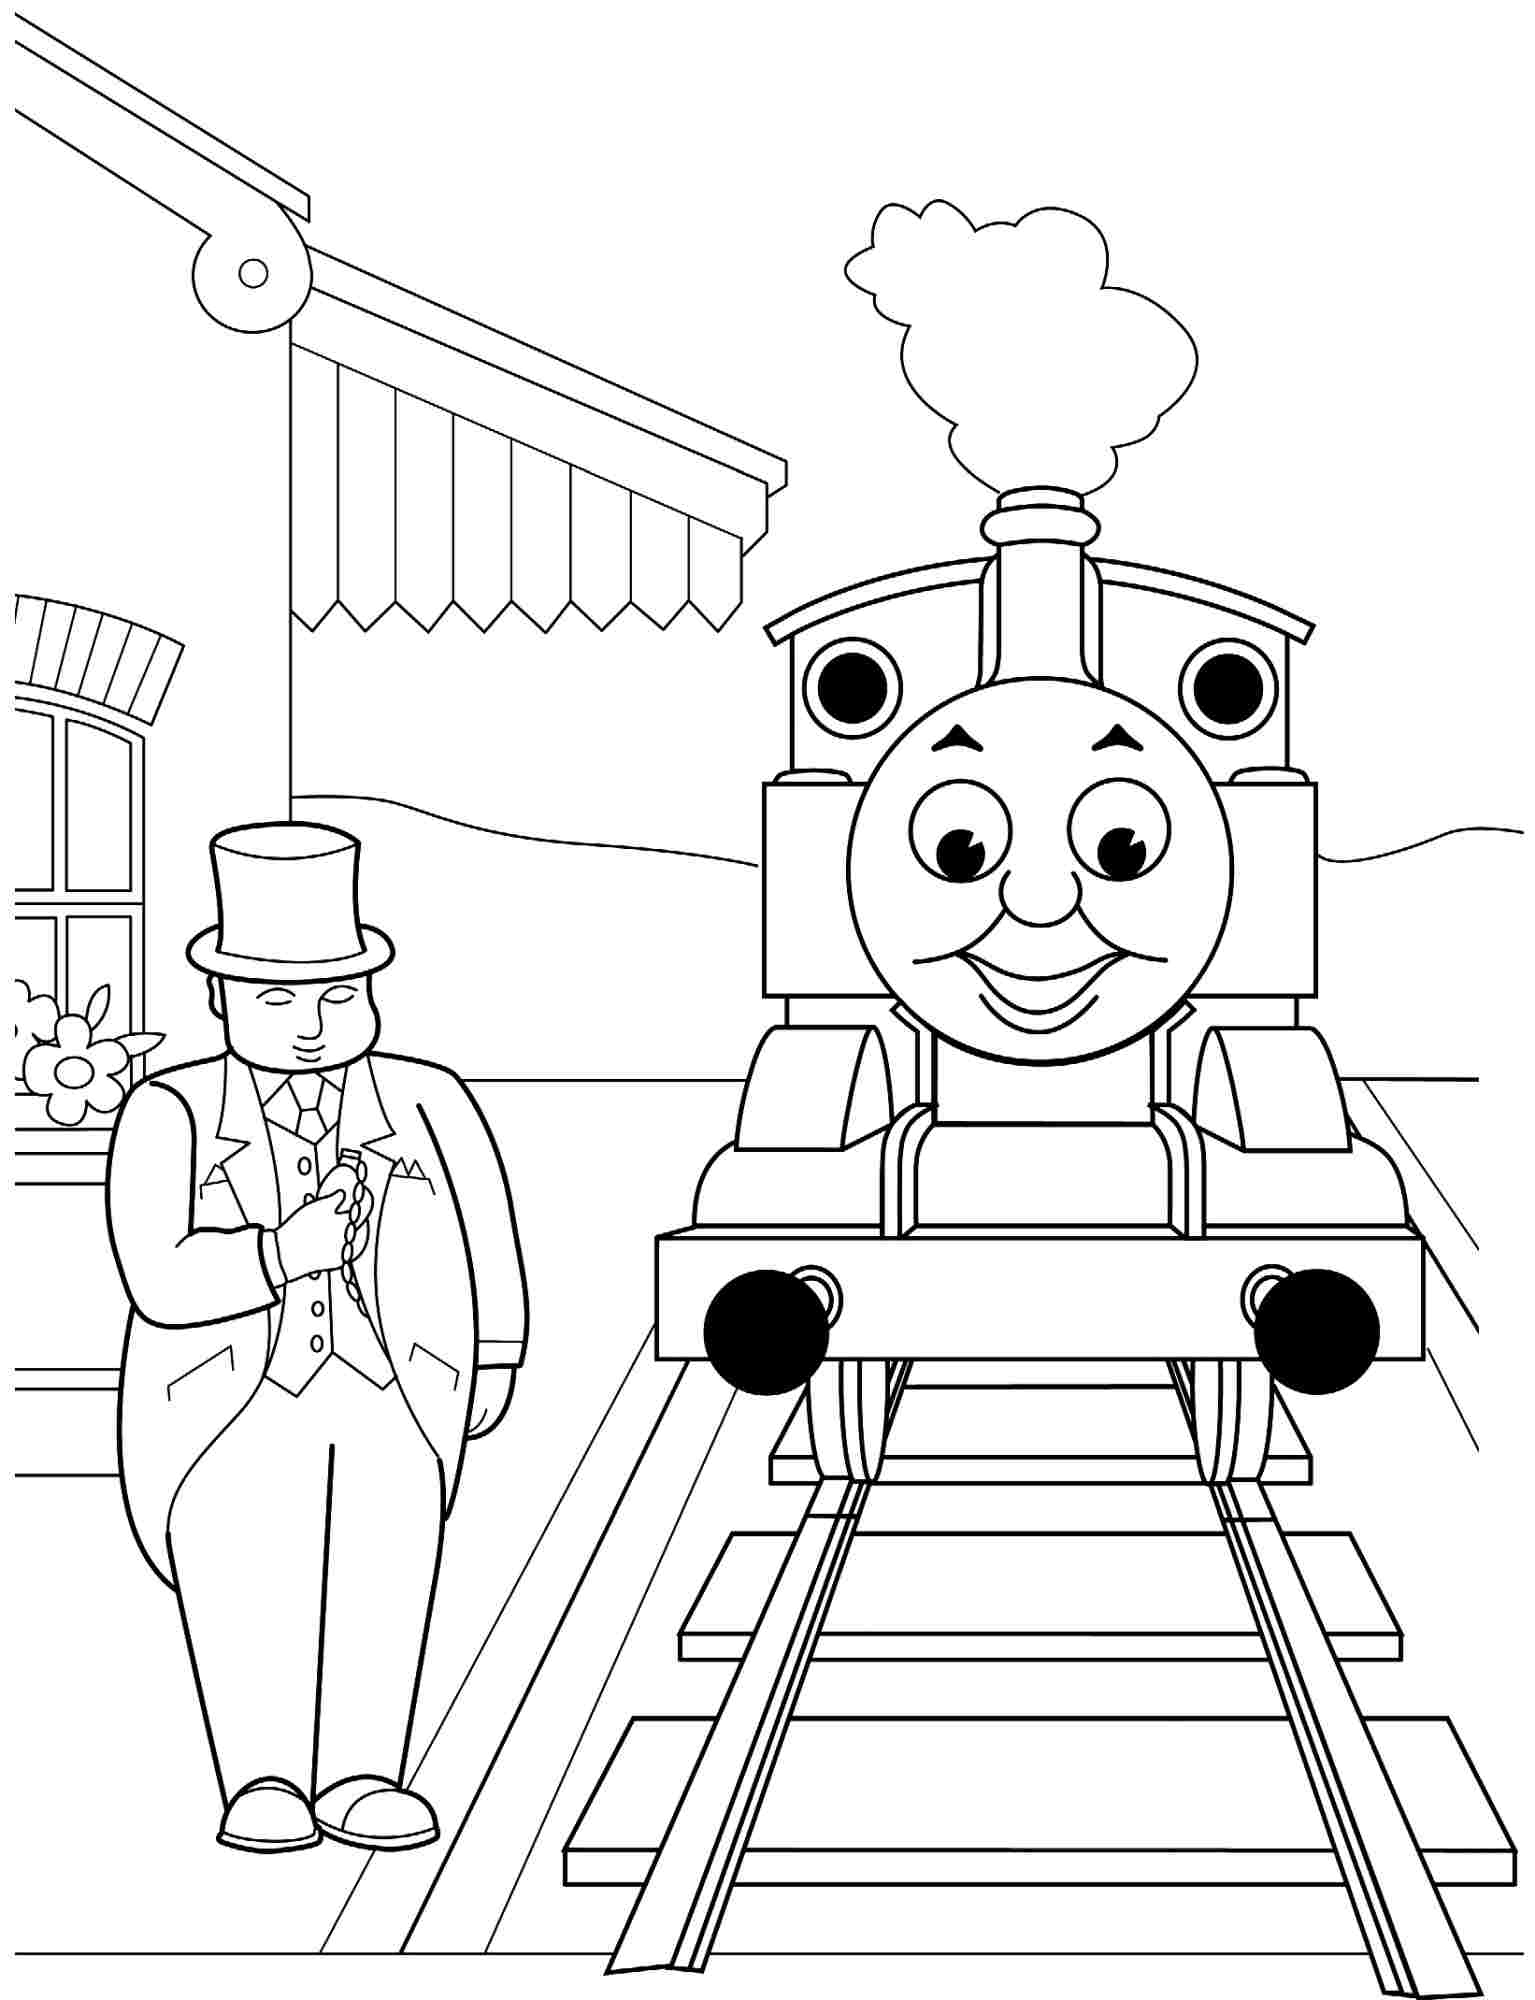 thomas and friends coloring pages printable thomas the train coloring pages top coloring pages and coloring friends thomas pages